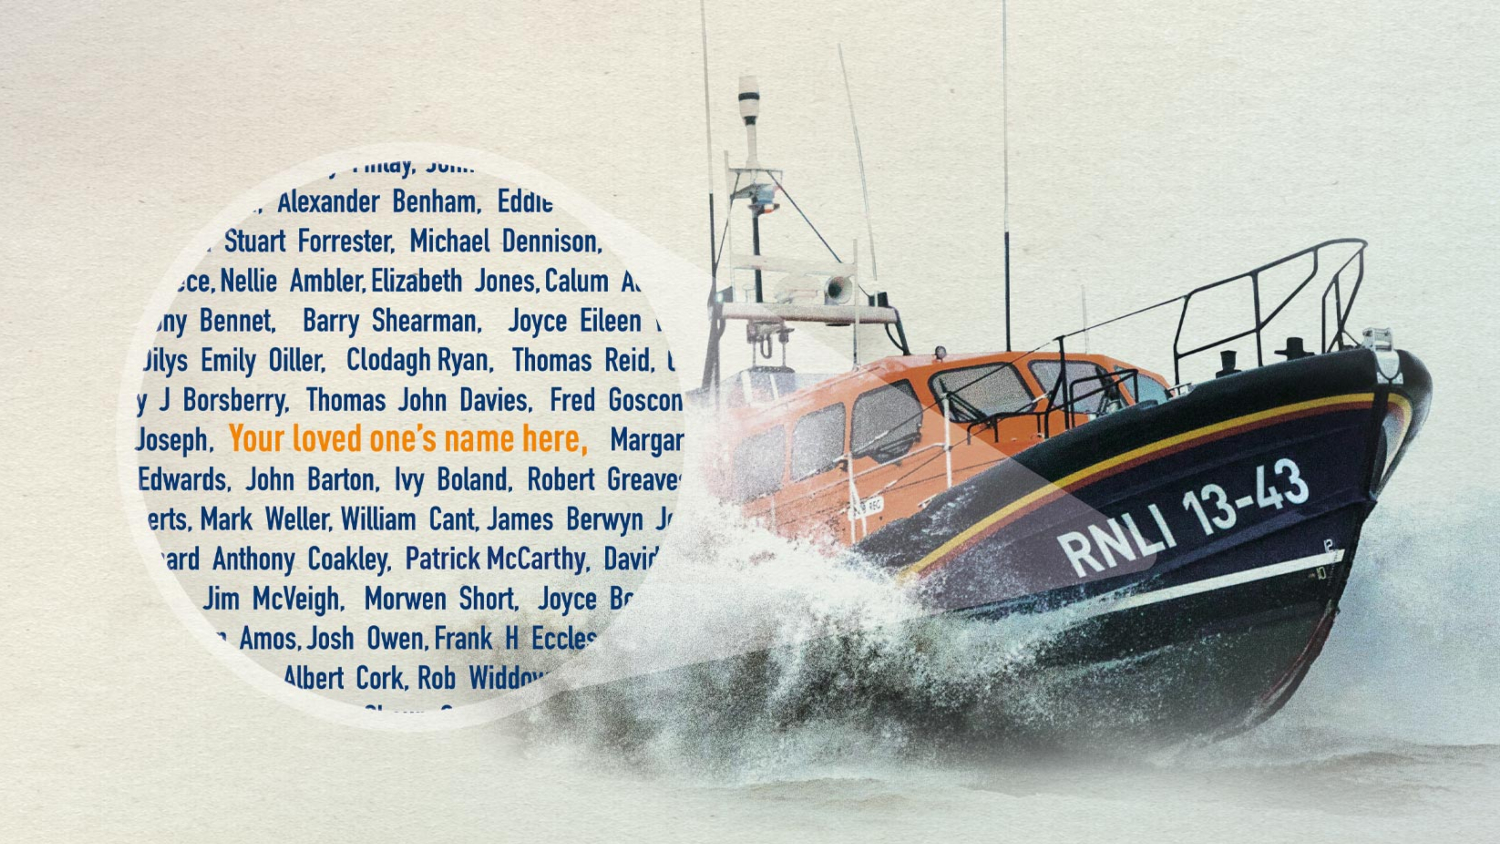 RNLI lifeboat on the water with Launch a Memory decals